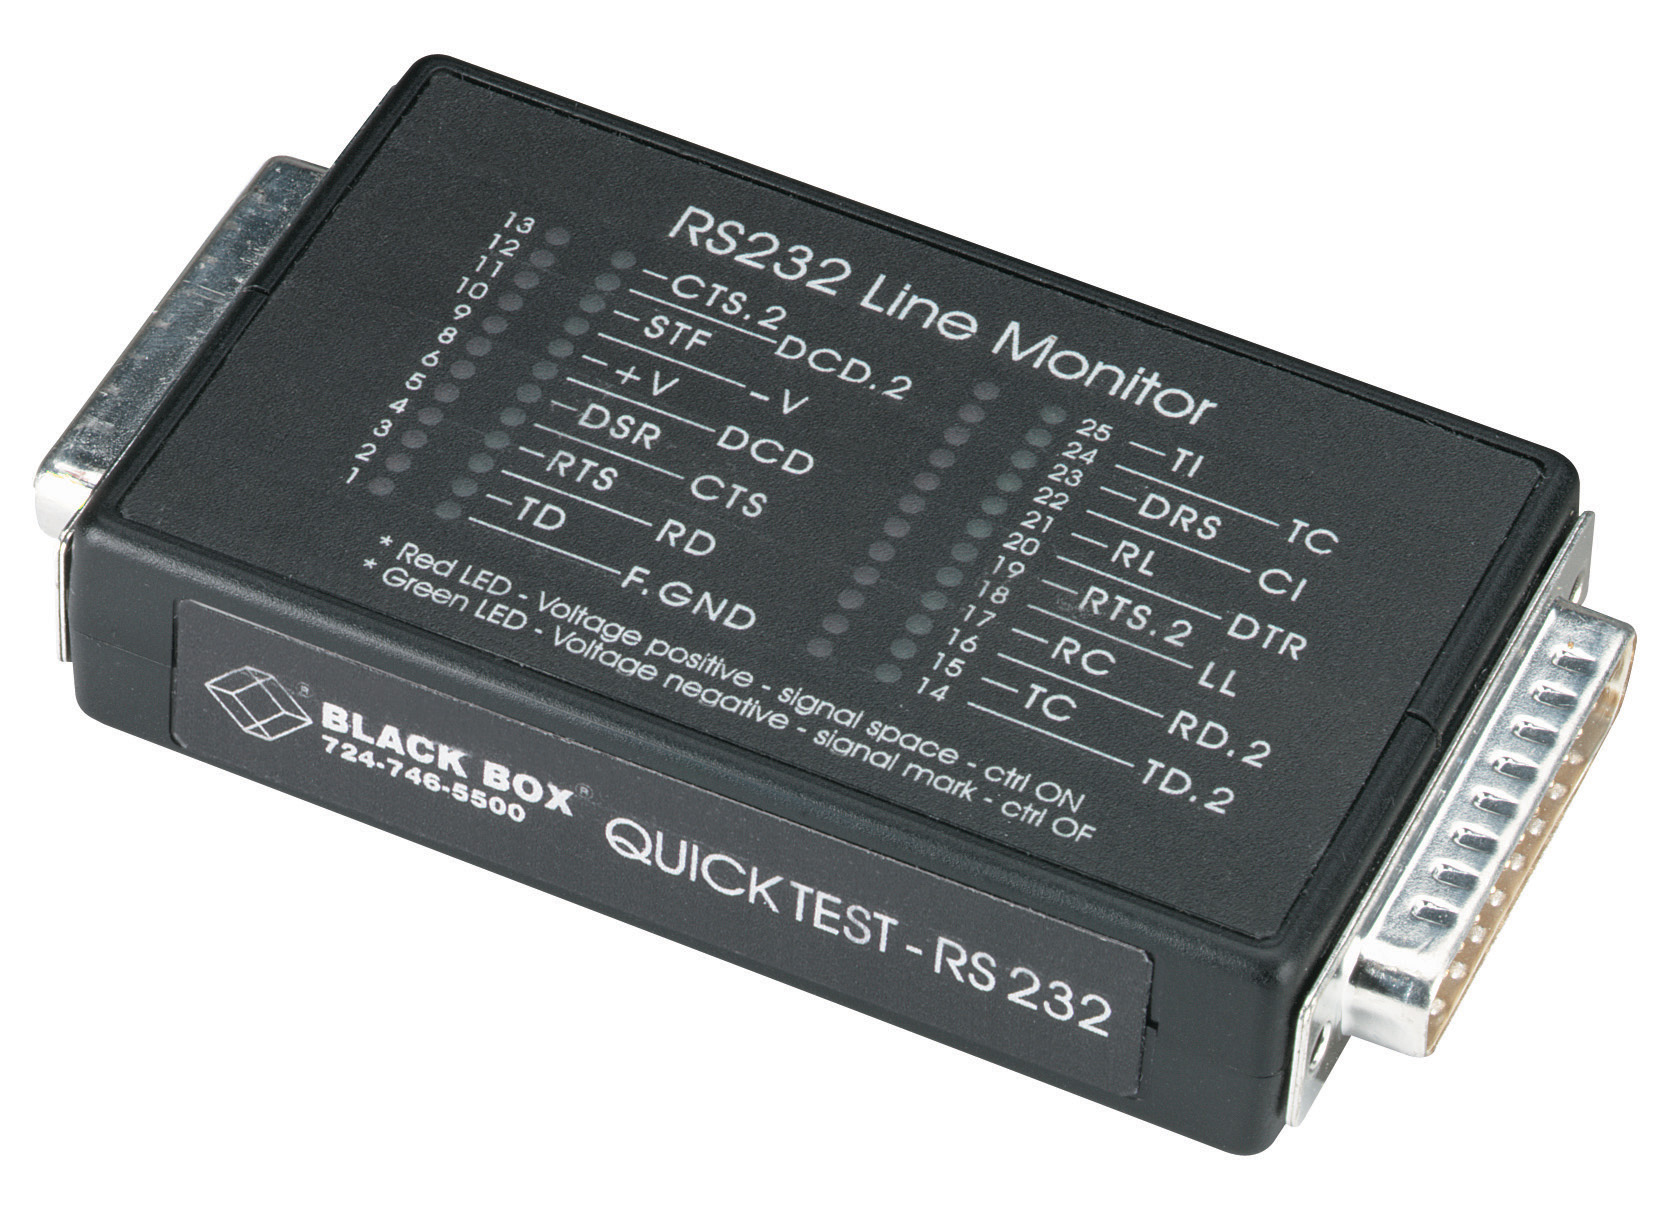 Quick Test RS-232